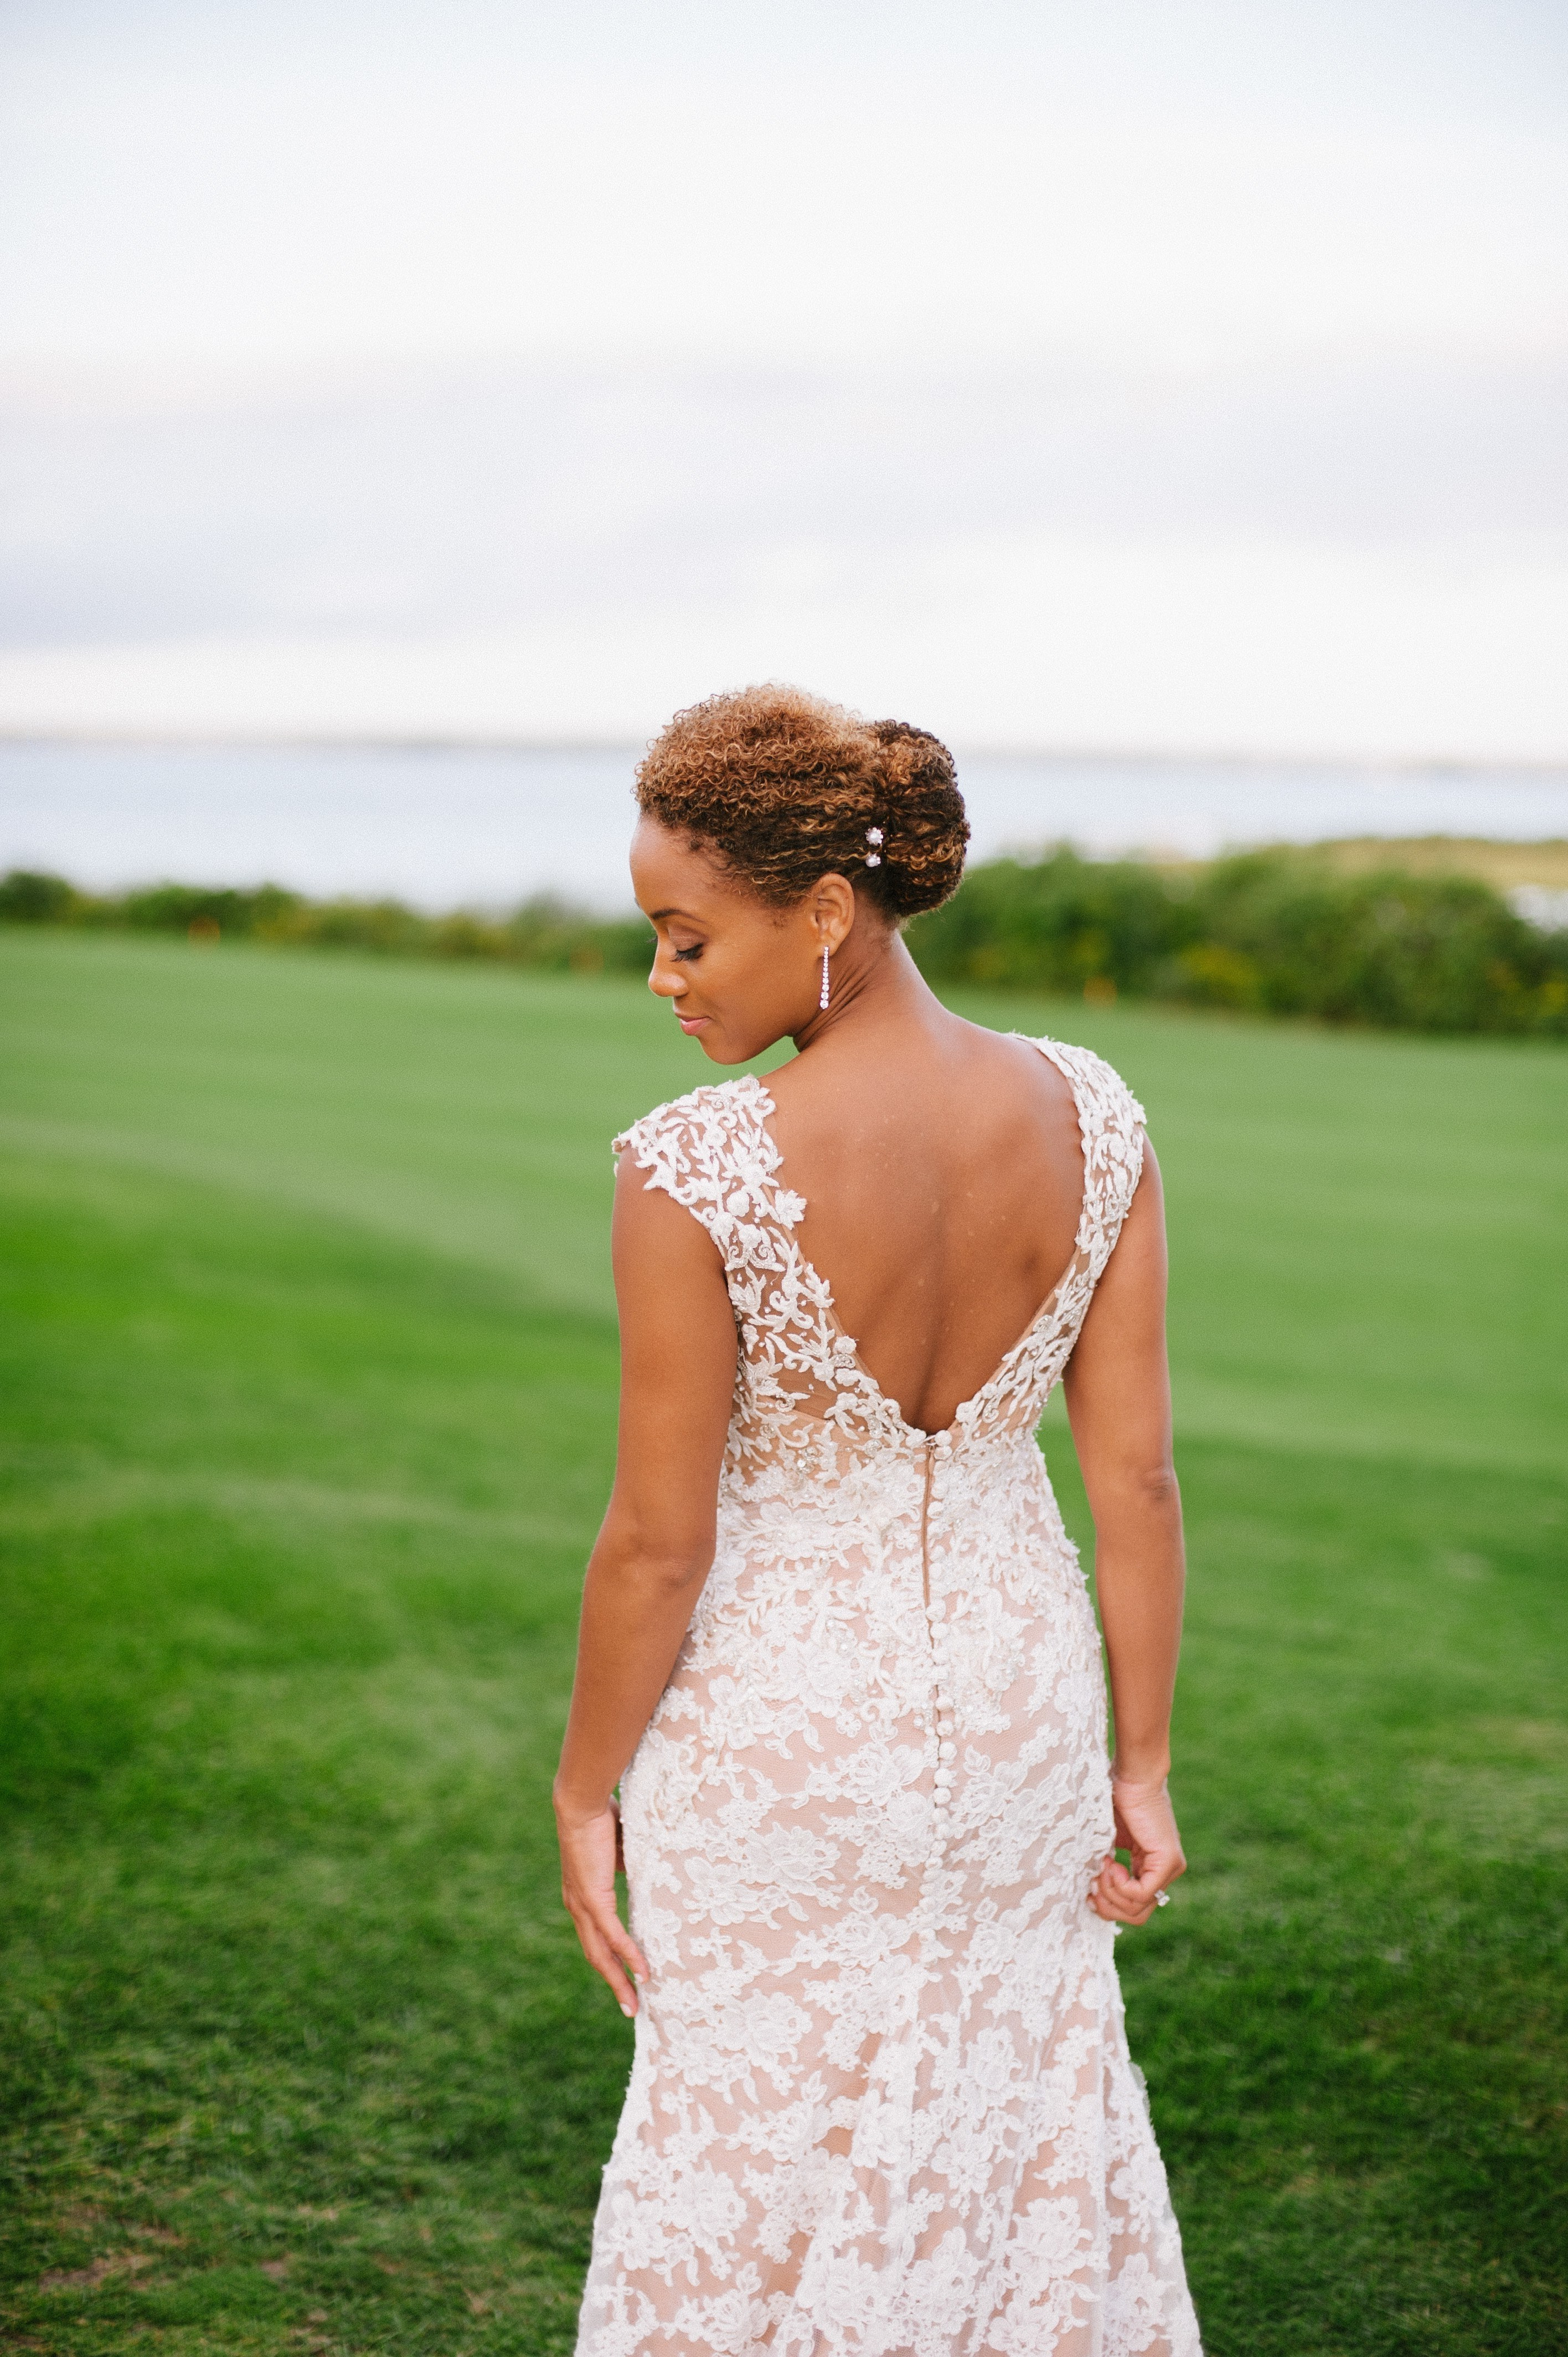 Brides Regarding Well Liked Sleek And Big Princess Ball Gown Updos For Brides (View 5 of 20)